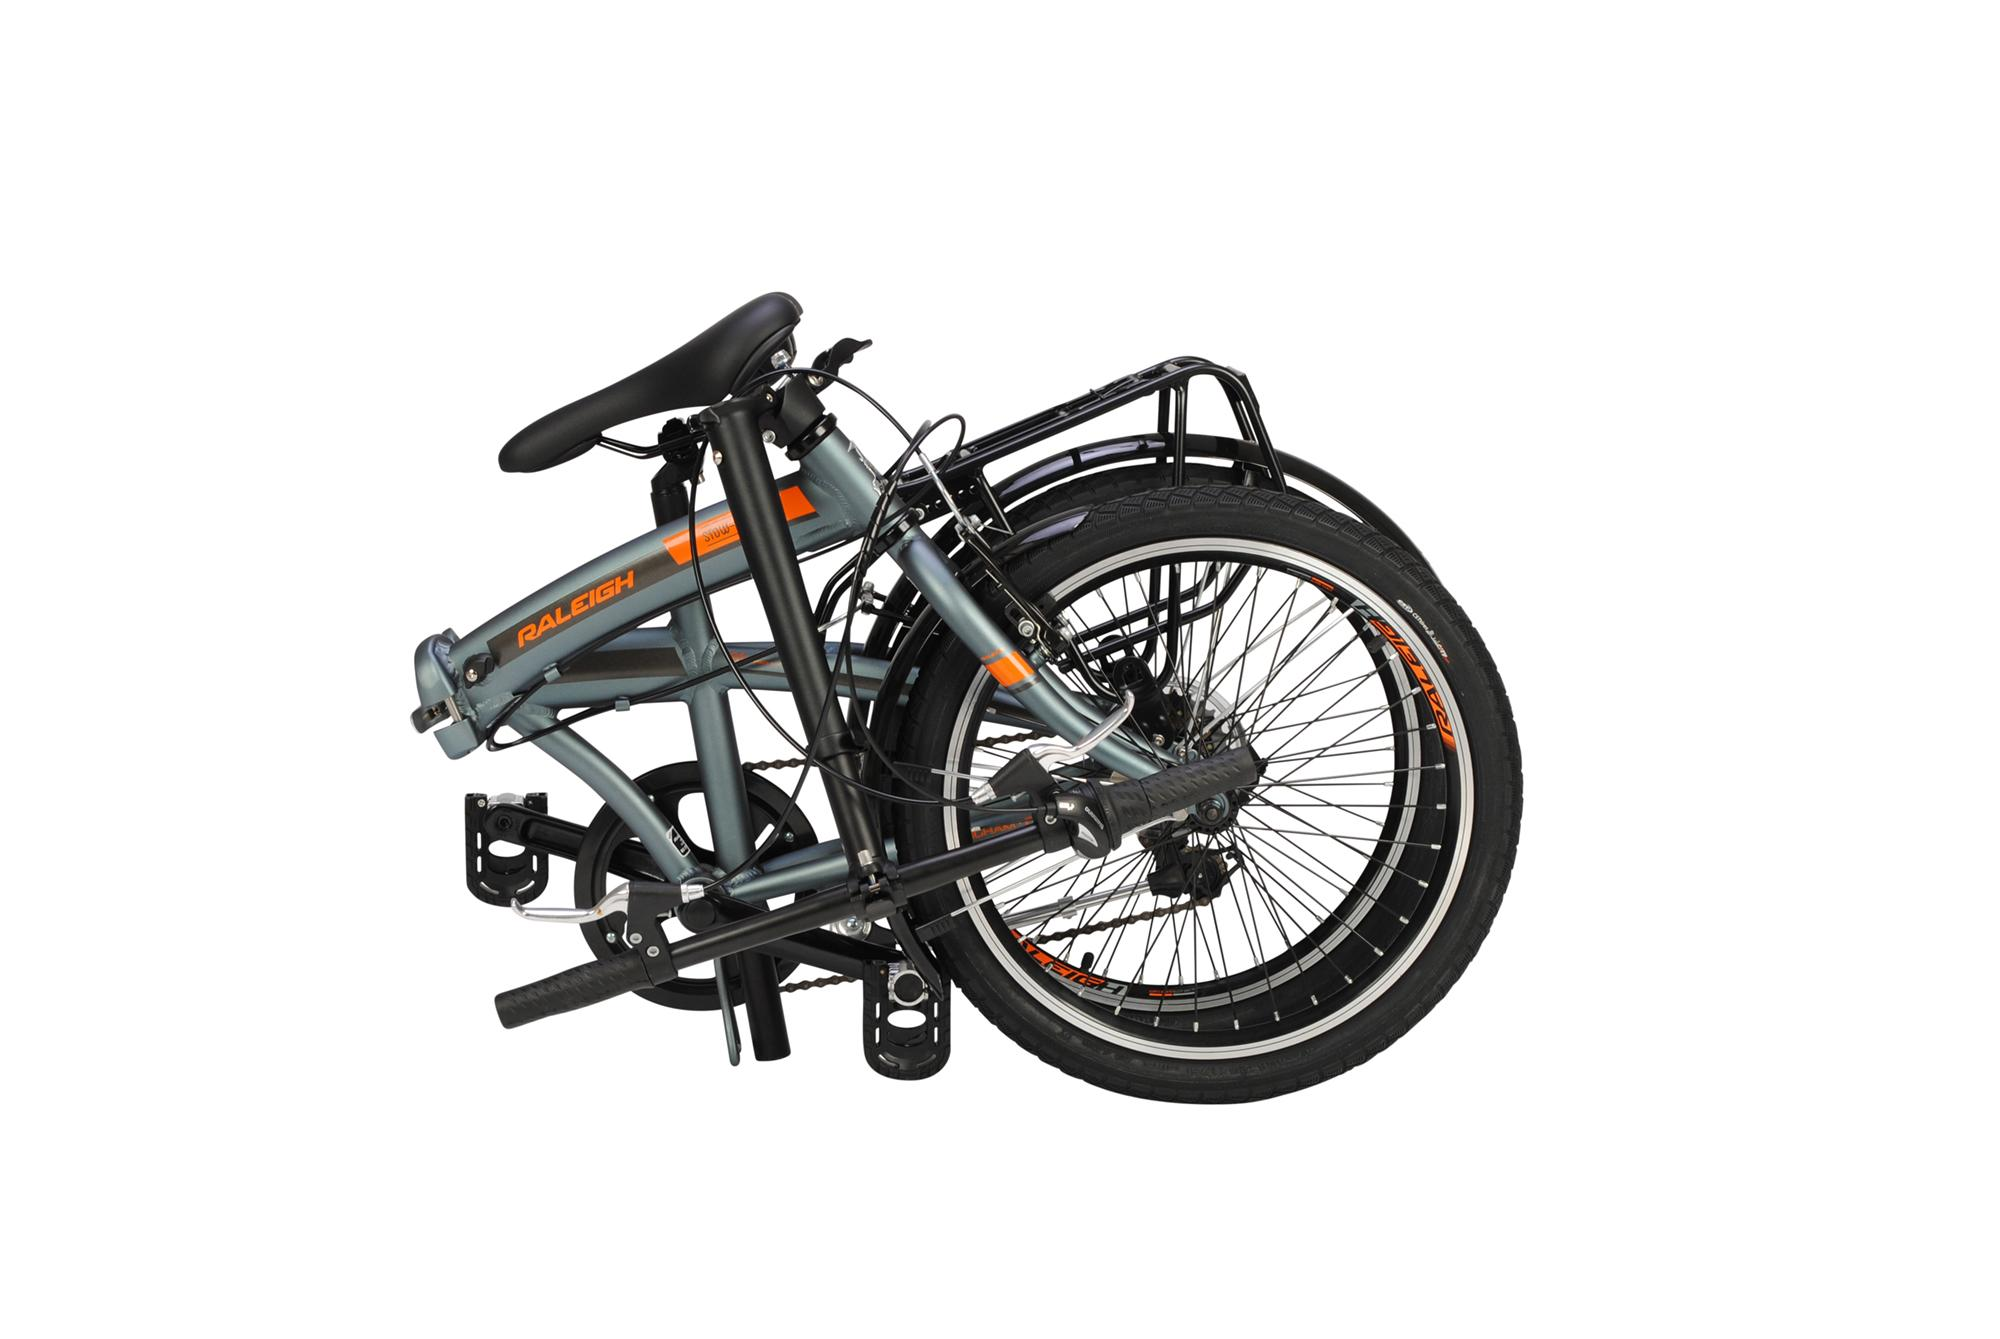 Folded Raleigh Stowaway folding bike